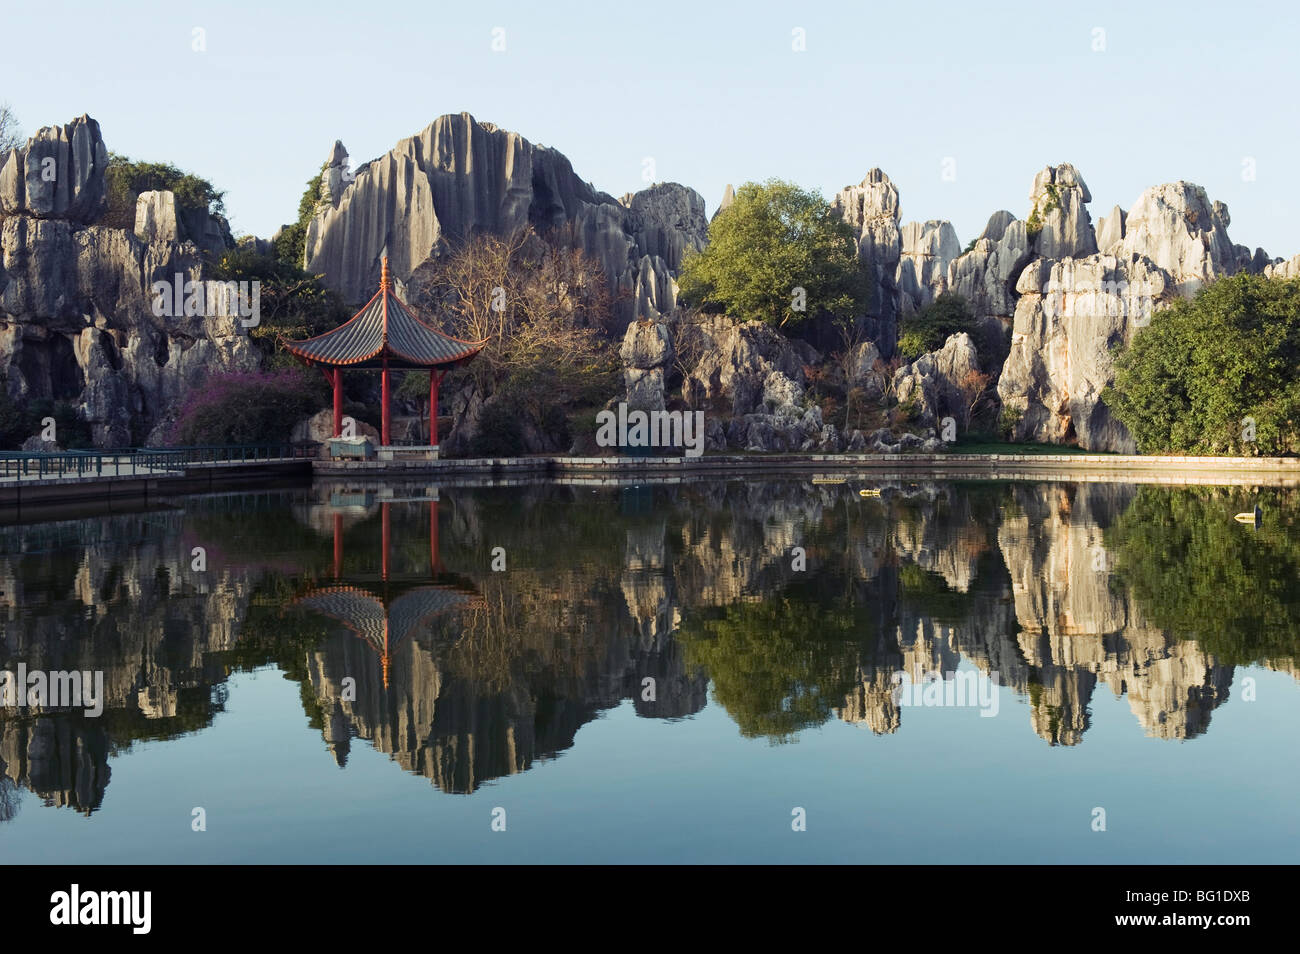 Reflection of karst scenery at Shilin Stone Forest, UNESCO World Heritage Site, Yunnan Province, China, Asia Stock Photo